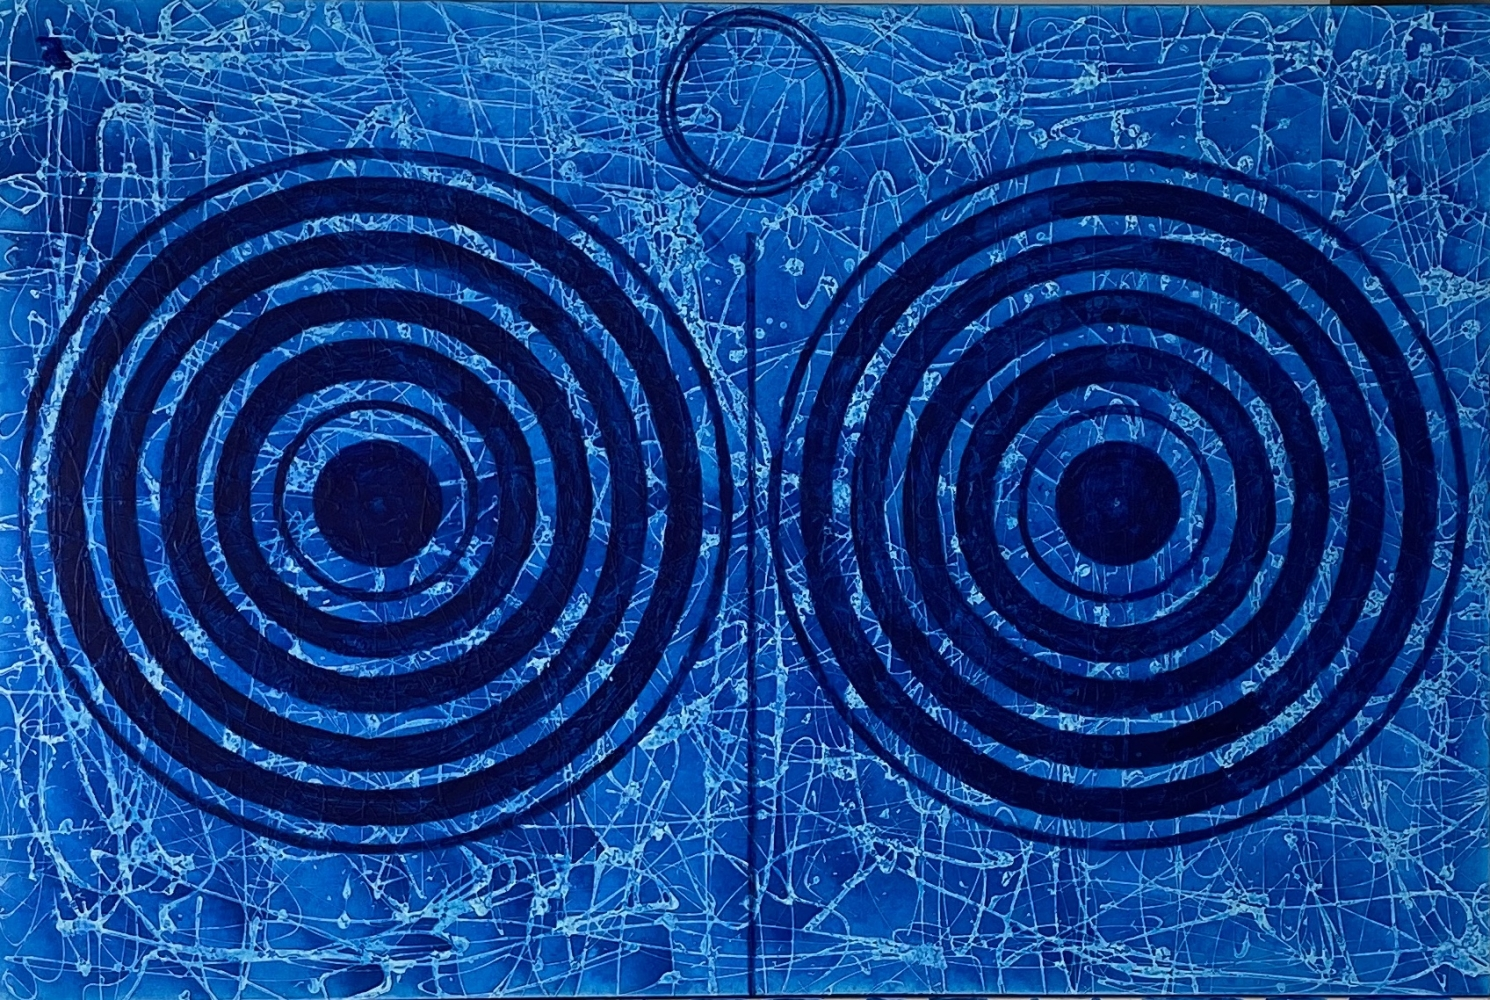 J. Steven Manolis, Splash (Concentric), 2018, Acrylic painting on canvas, 60 x 72 inches, Extra large Wall Art, Blue Abstract Art for sale at Manolis Projects Art Gallery, Miami, Fl